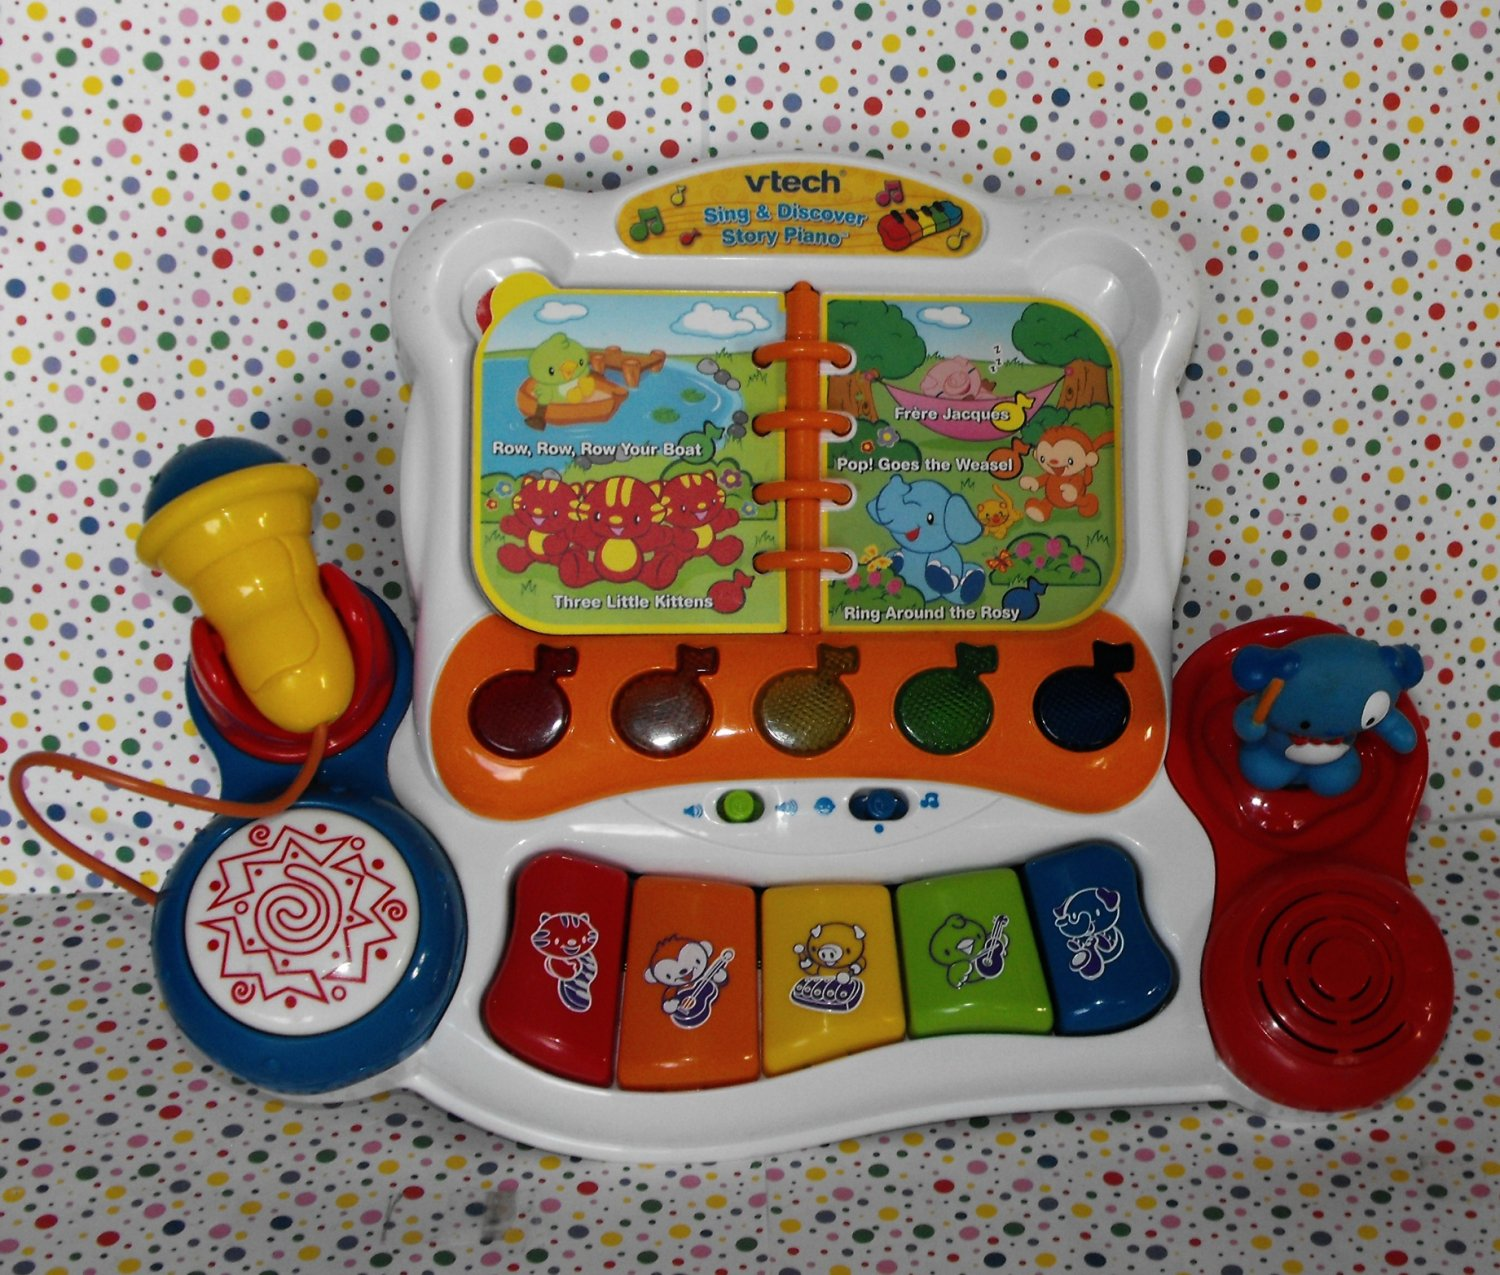 Vtech Sing and Discover Story Piano Baby Learning Toy